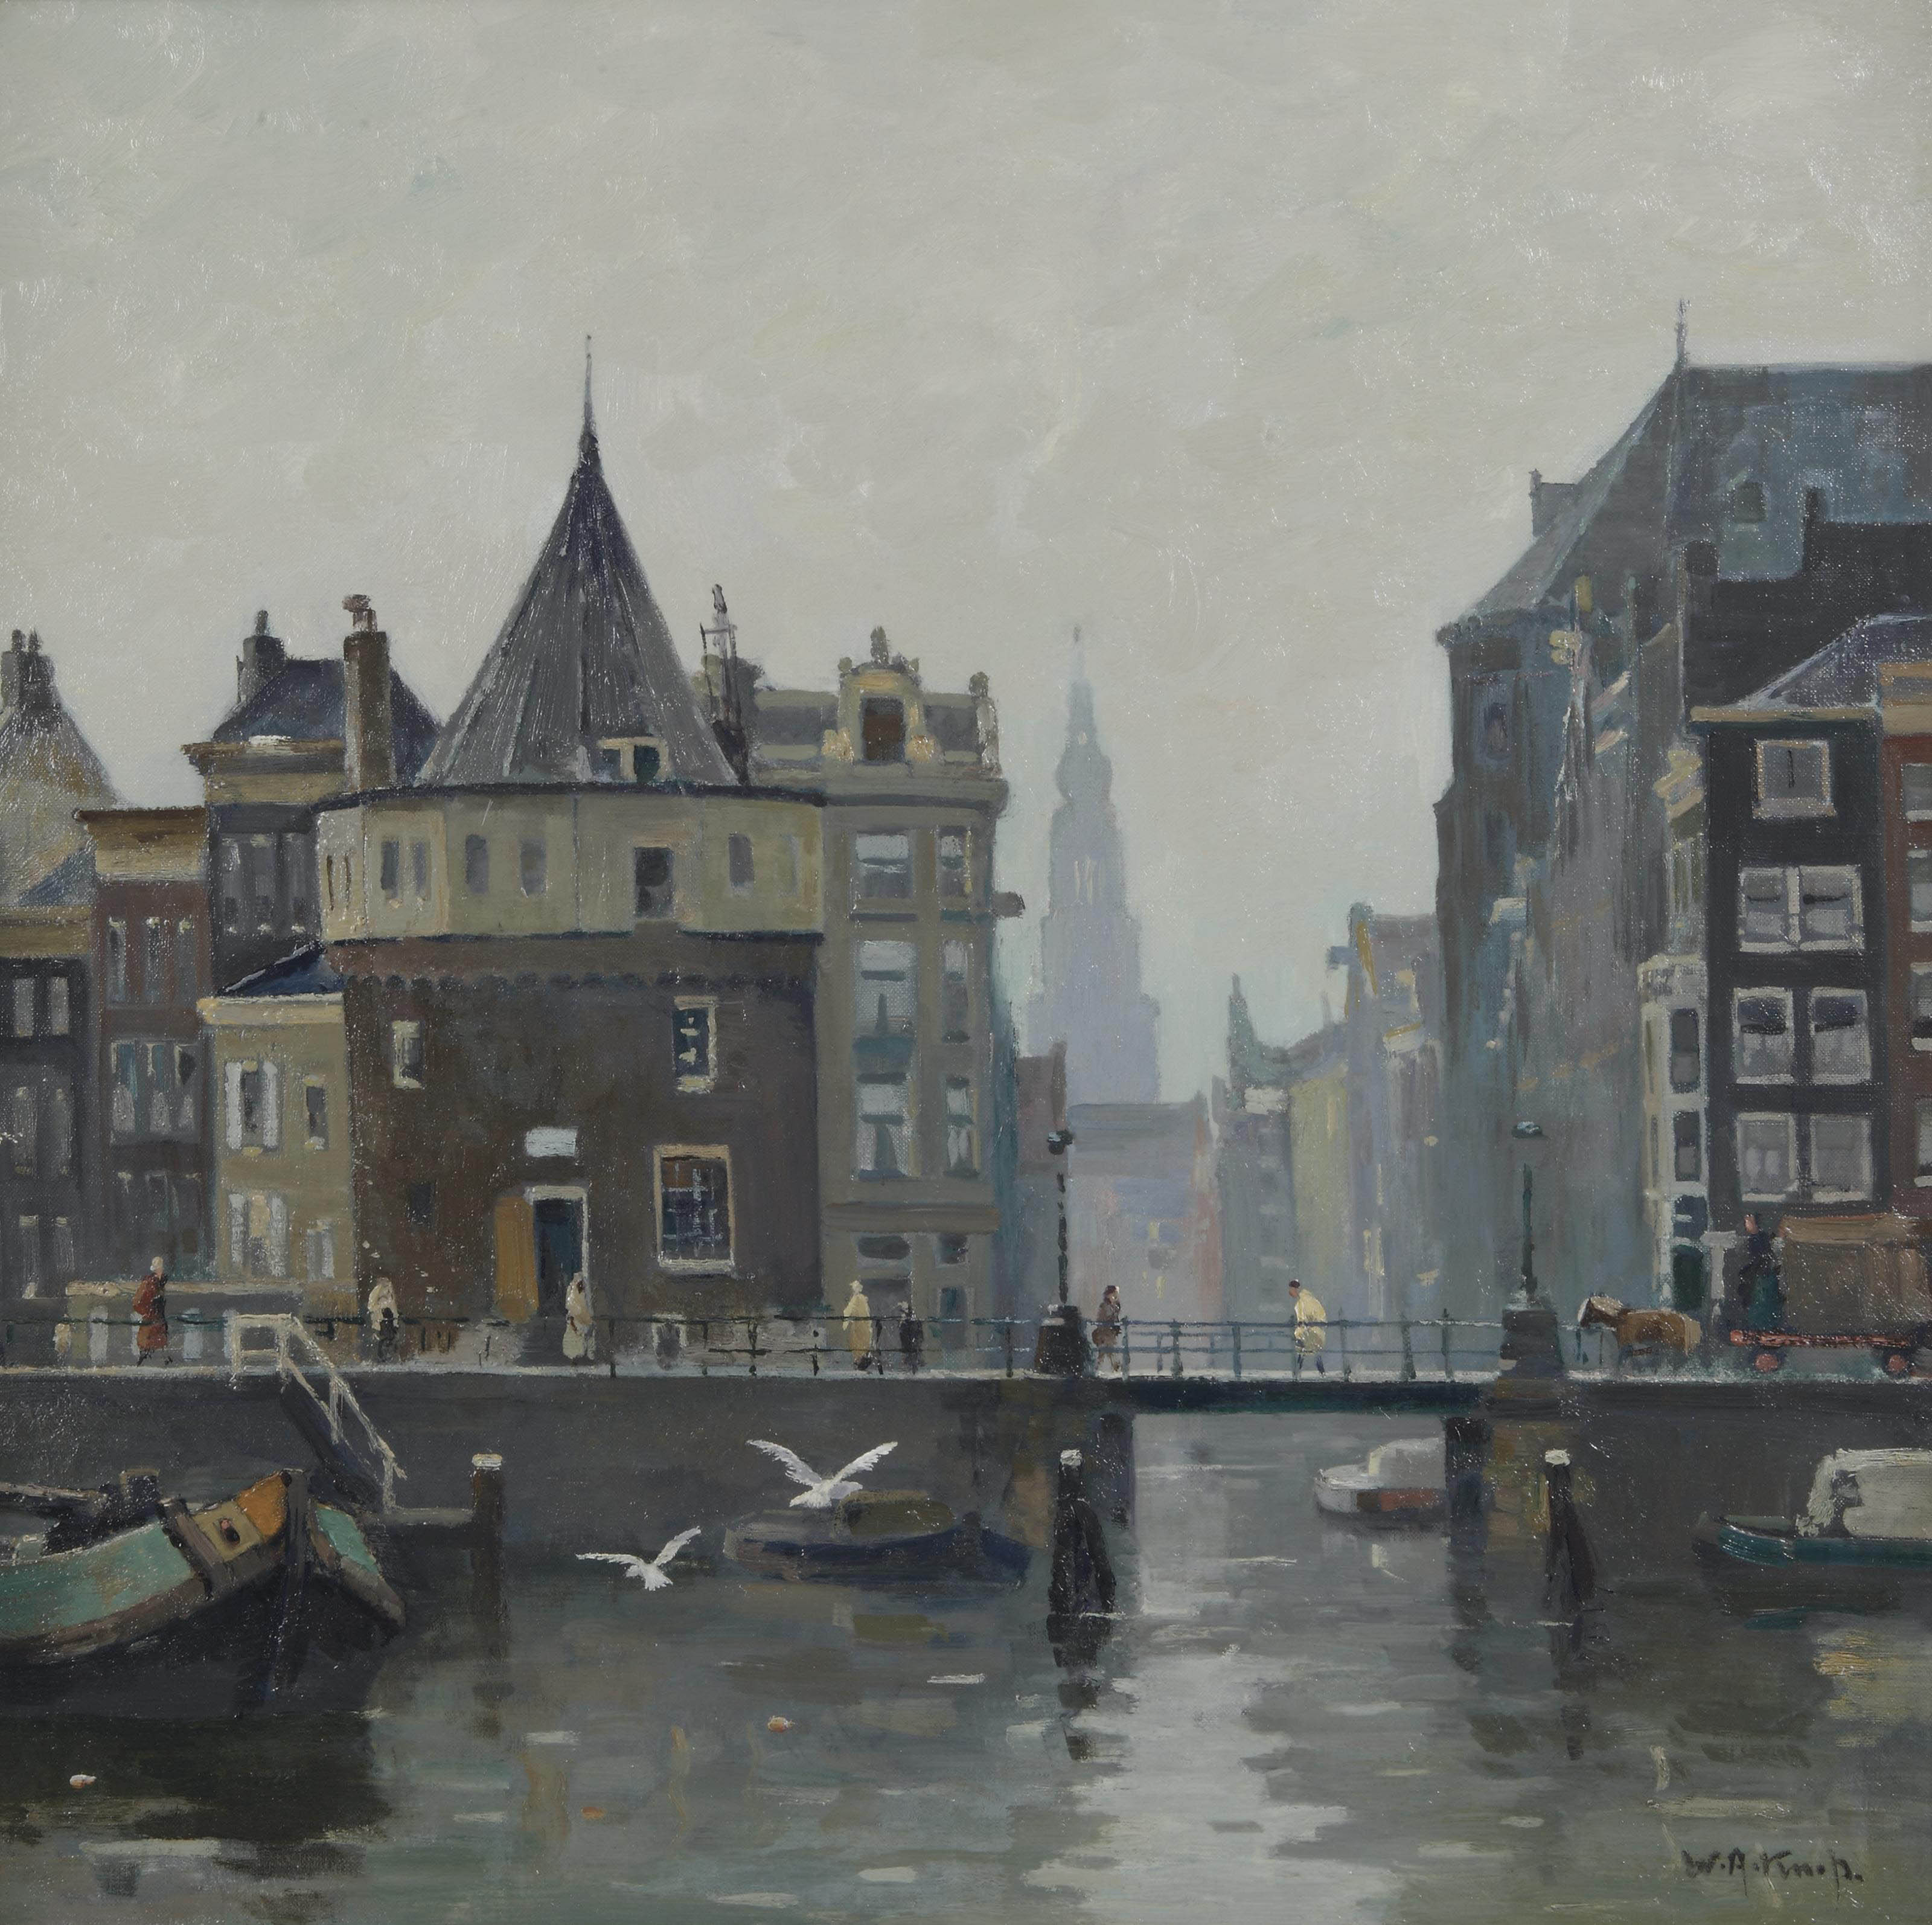 A view of the Schreierstoren, Amsterdam